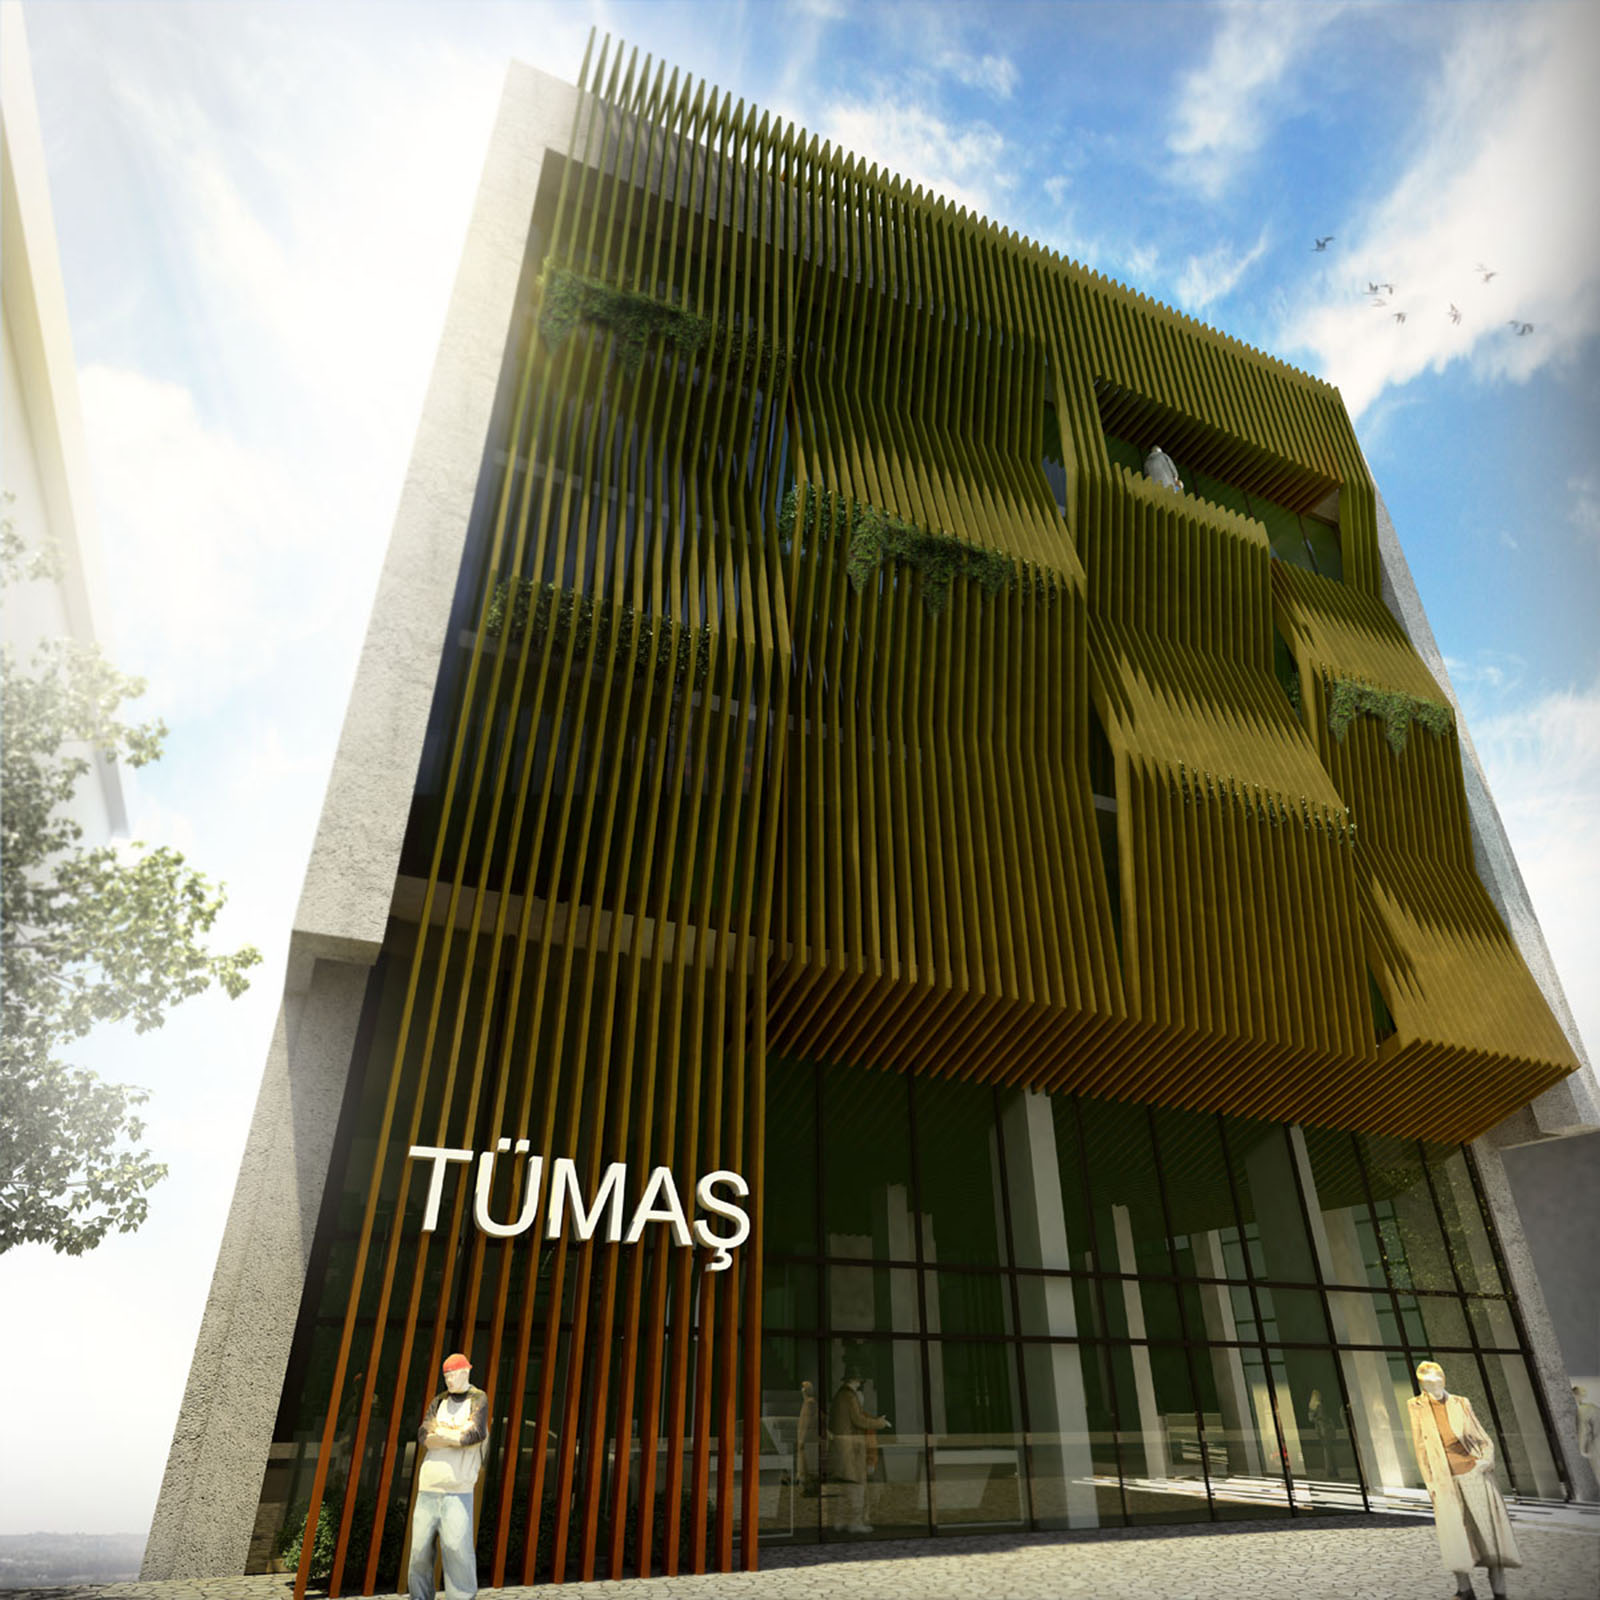 TUMAS Headquarters